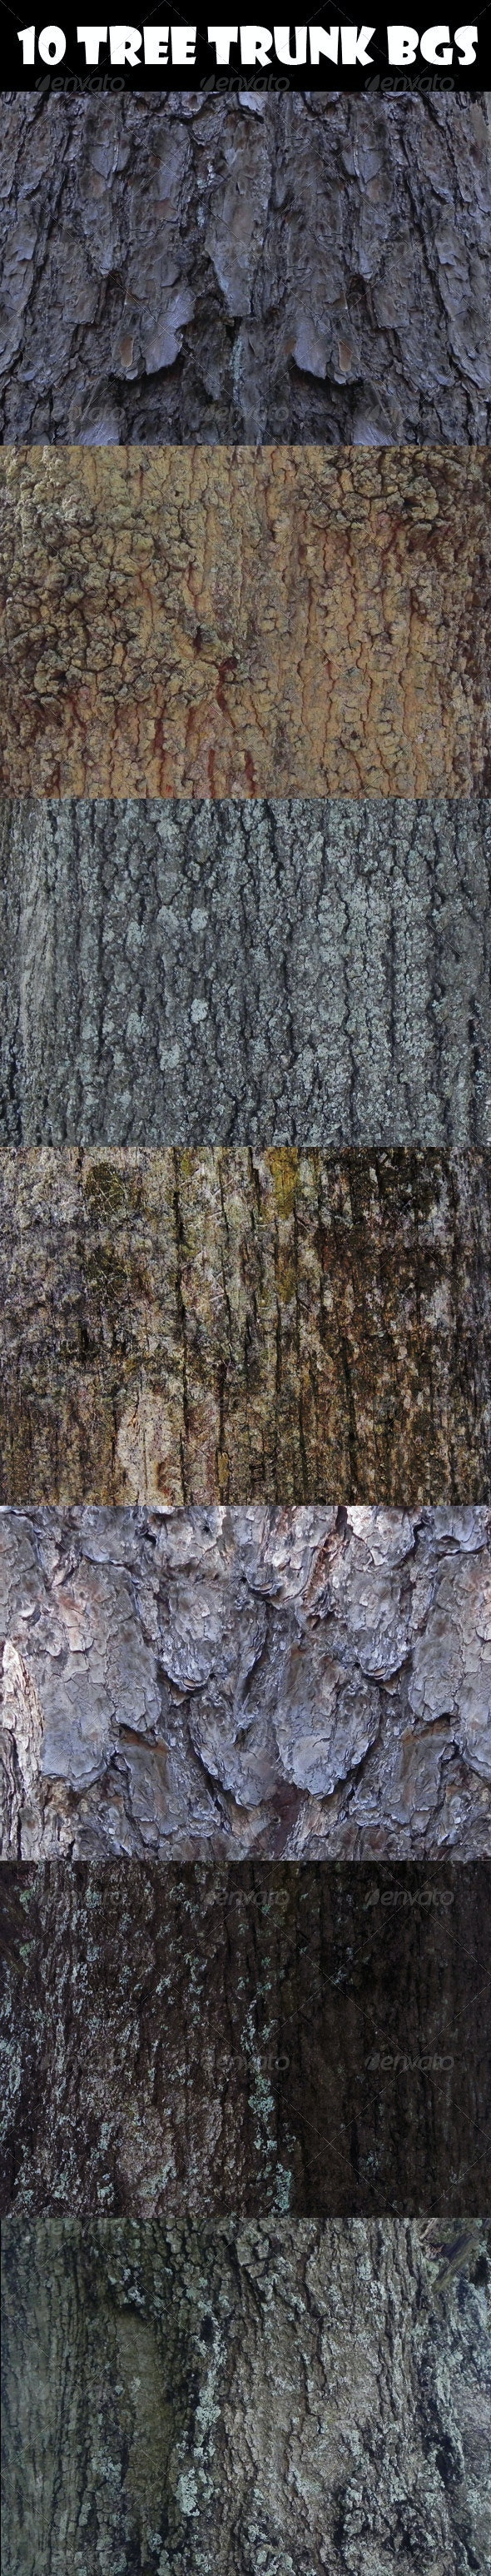 10 Tree Trunk Backgrounds - Wood Textures